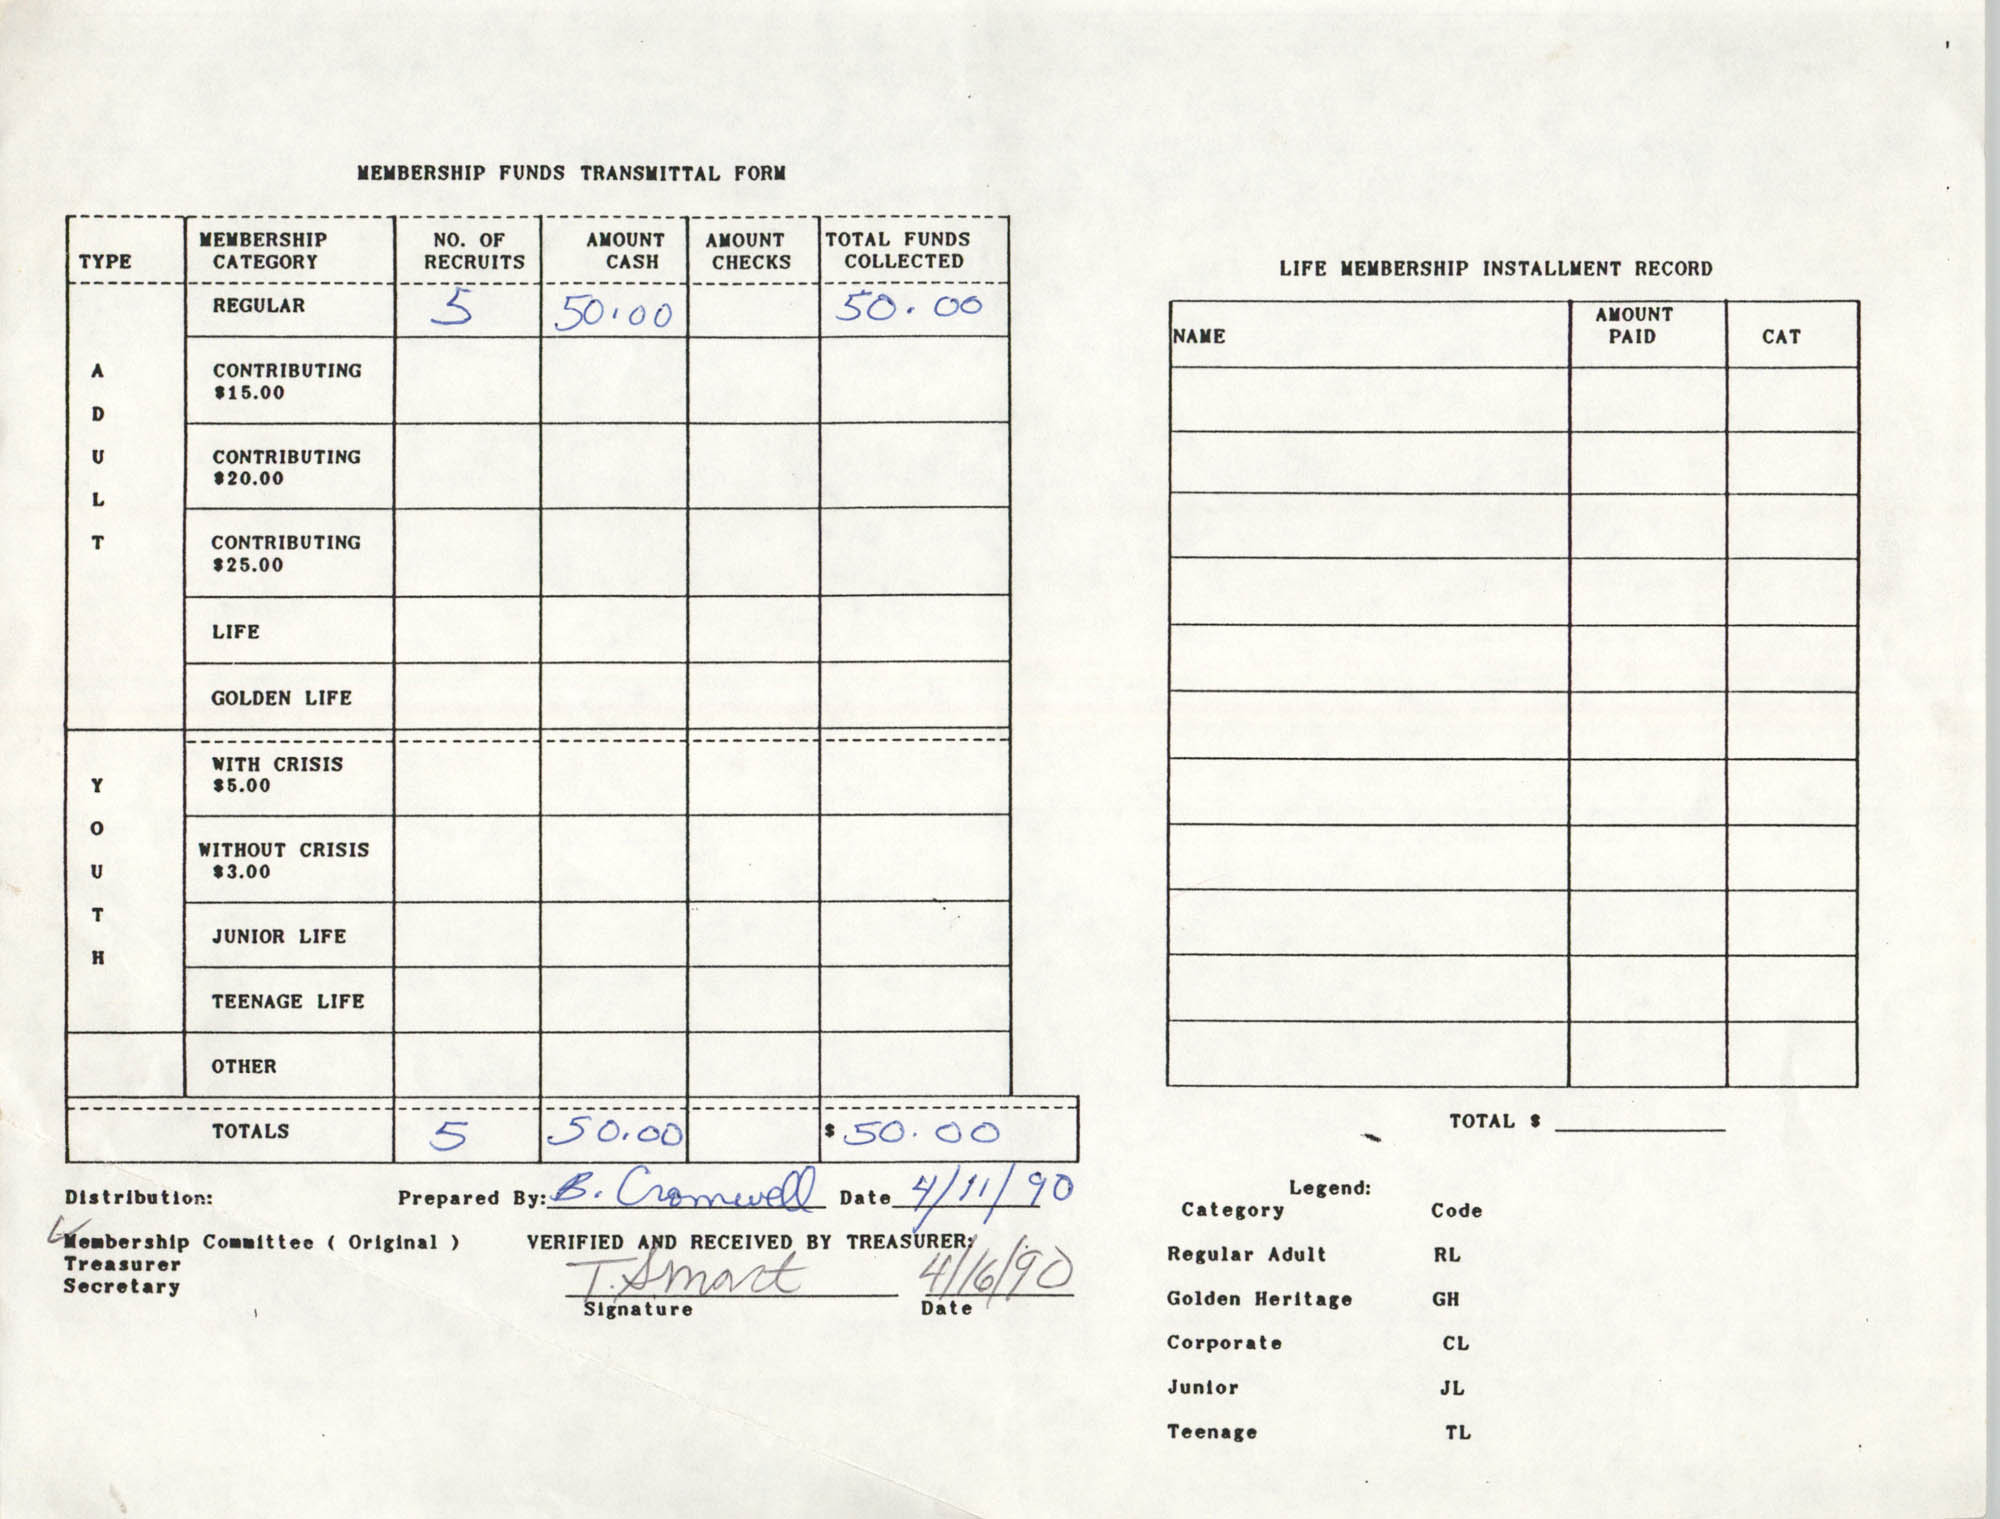 Charleston Branch of the NAACP Funds Transmittal Forms, April 1990, Page 1